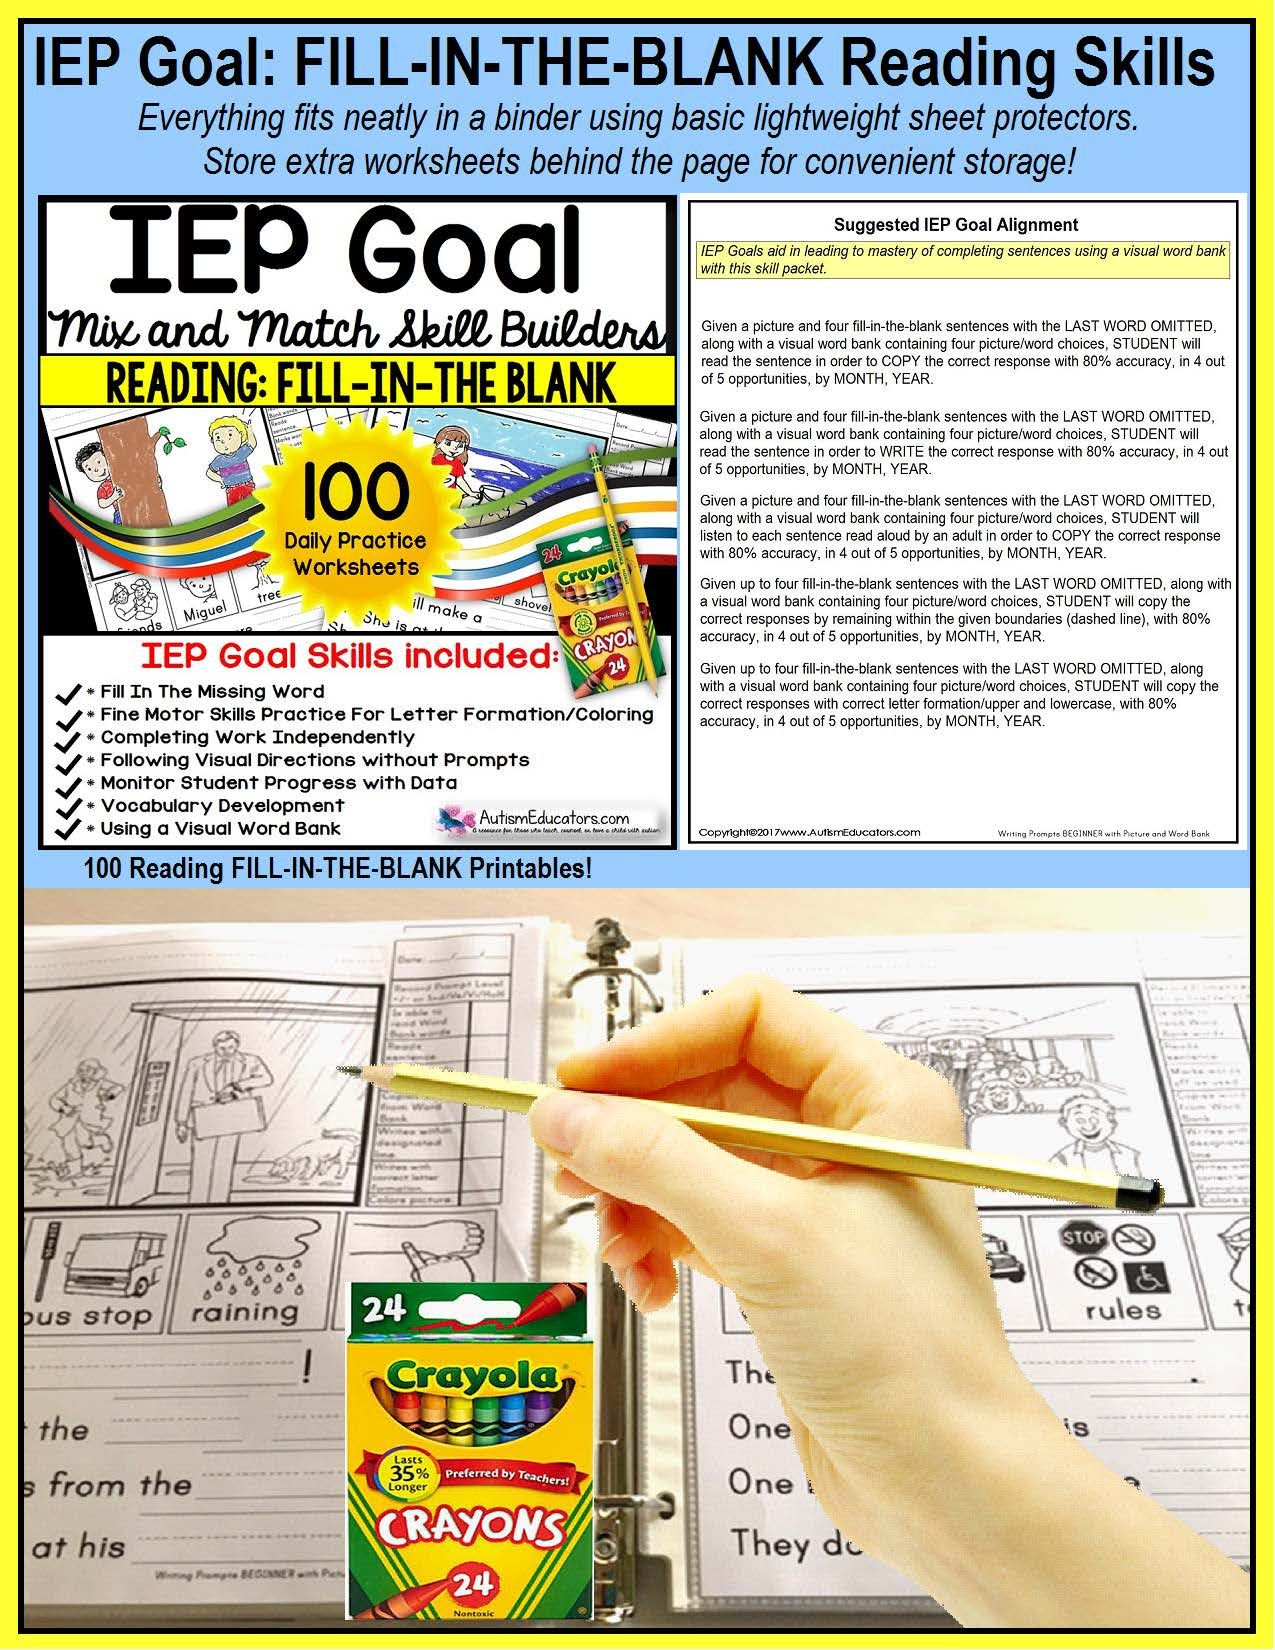 Reading Comprehension Iep Skill Builder Fill In The Blank Worksheets For Autism Reading Comprehension Iep Goals Teaching Reading Strategies [ 1650 x 1275 Pixel ]